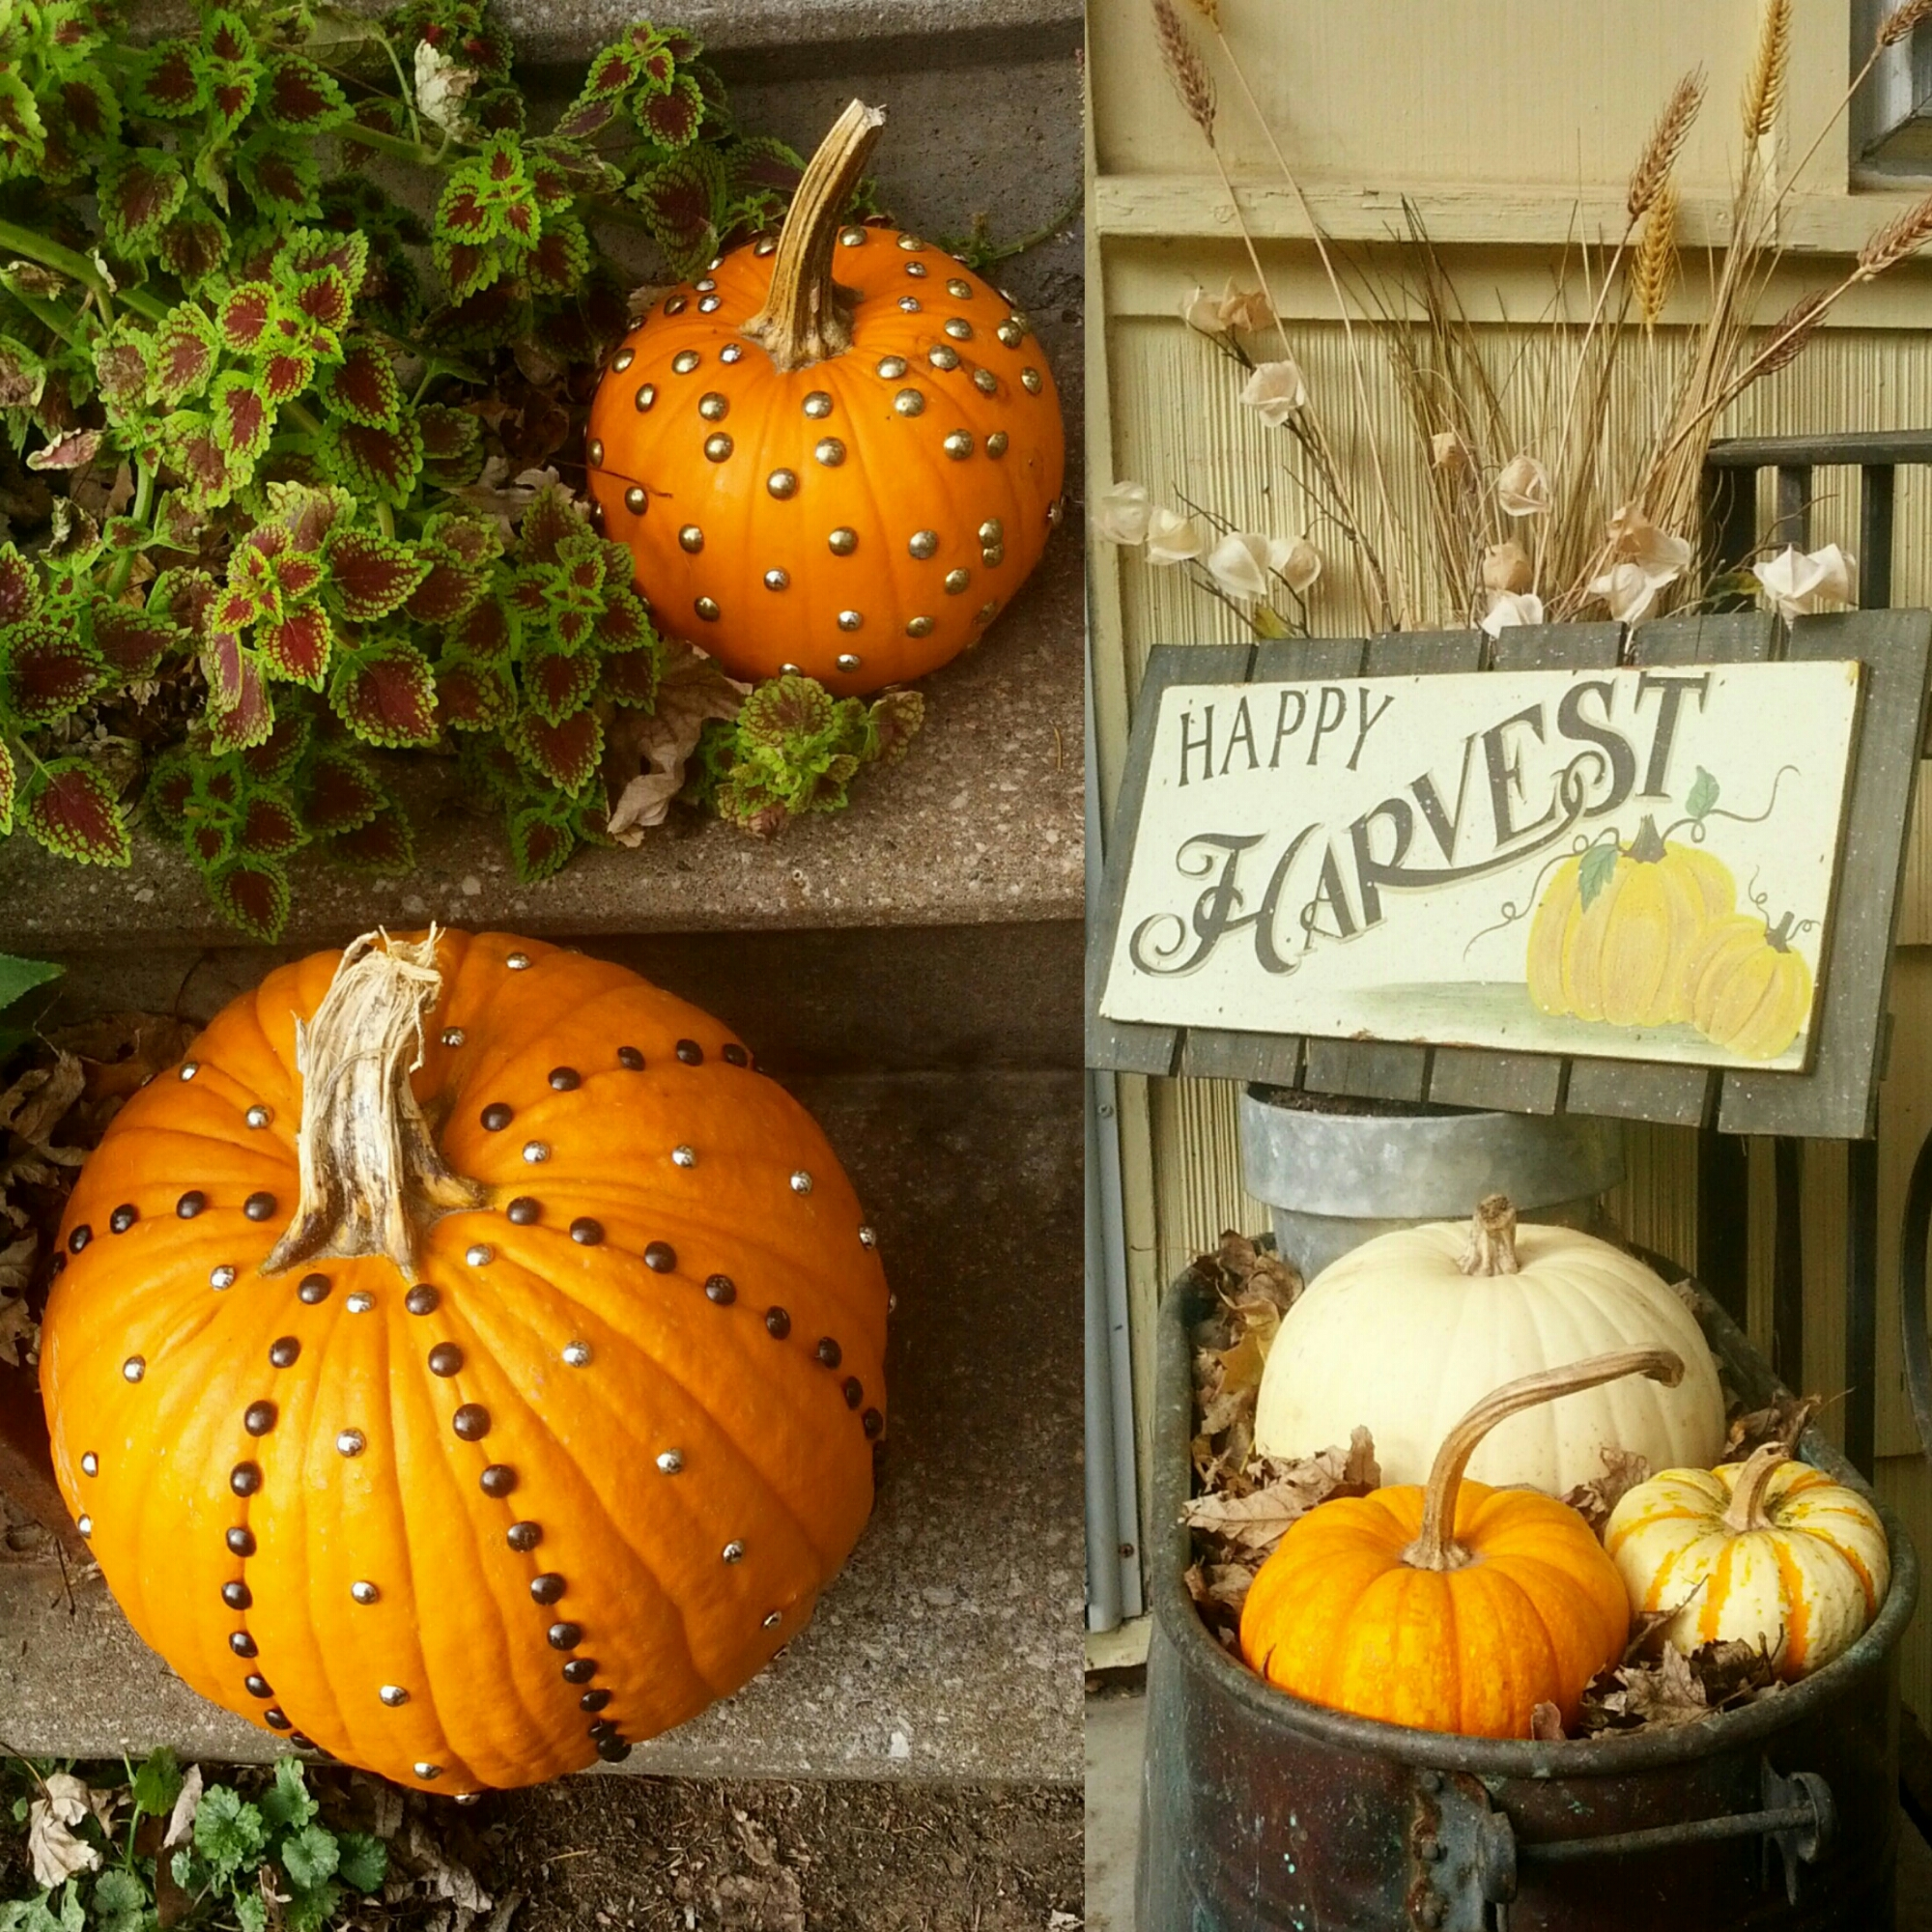 Fall front porch planter. Antique metal wash tub filled with pumpkins, autumn flowers & wheat stalks, and a vintage style harvest sign. Diy pumpkins studded with upholstery tacks add a touch of rustic glam to the steps bordered by lush Colius leaves. Country, cottage decor. By Shalom Schultz Designs.